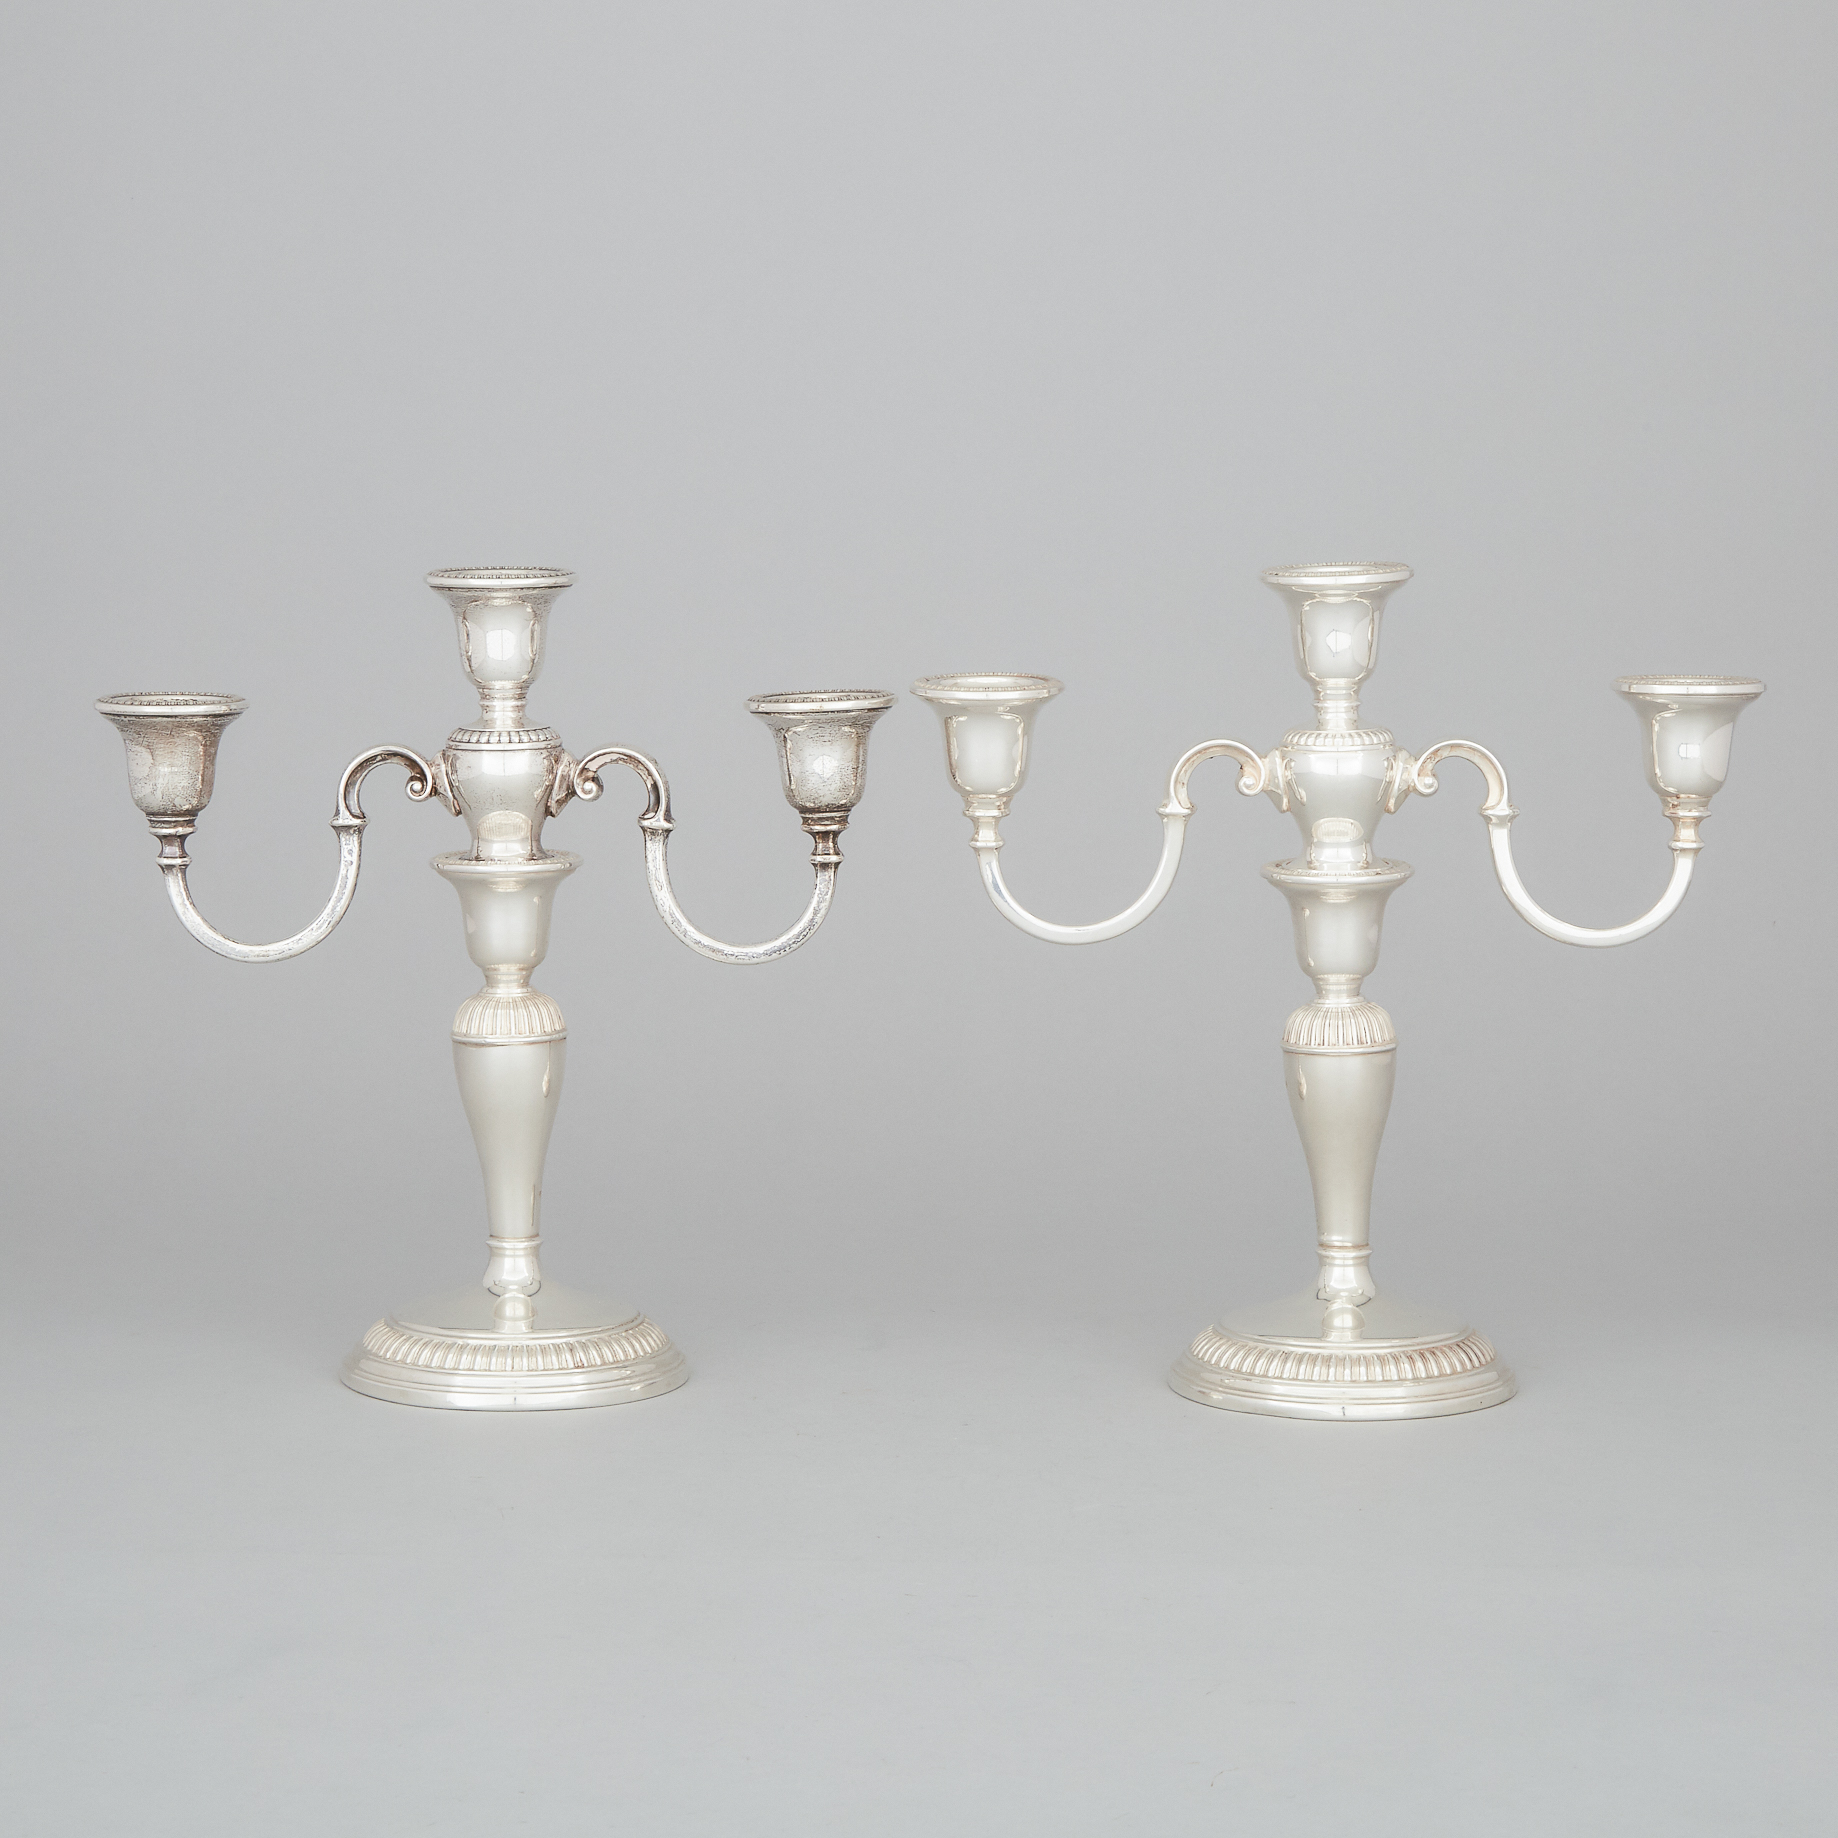 Pair of Canadian Silver Three-Light Candelabra, Henry Birks & Sons, Montreal, Que., 1964/70